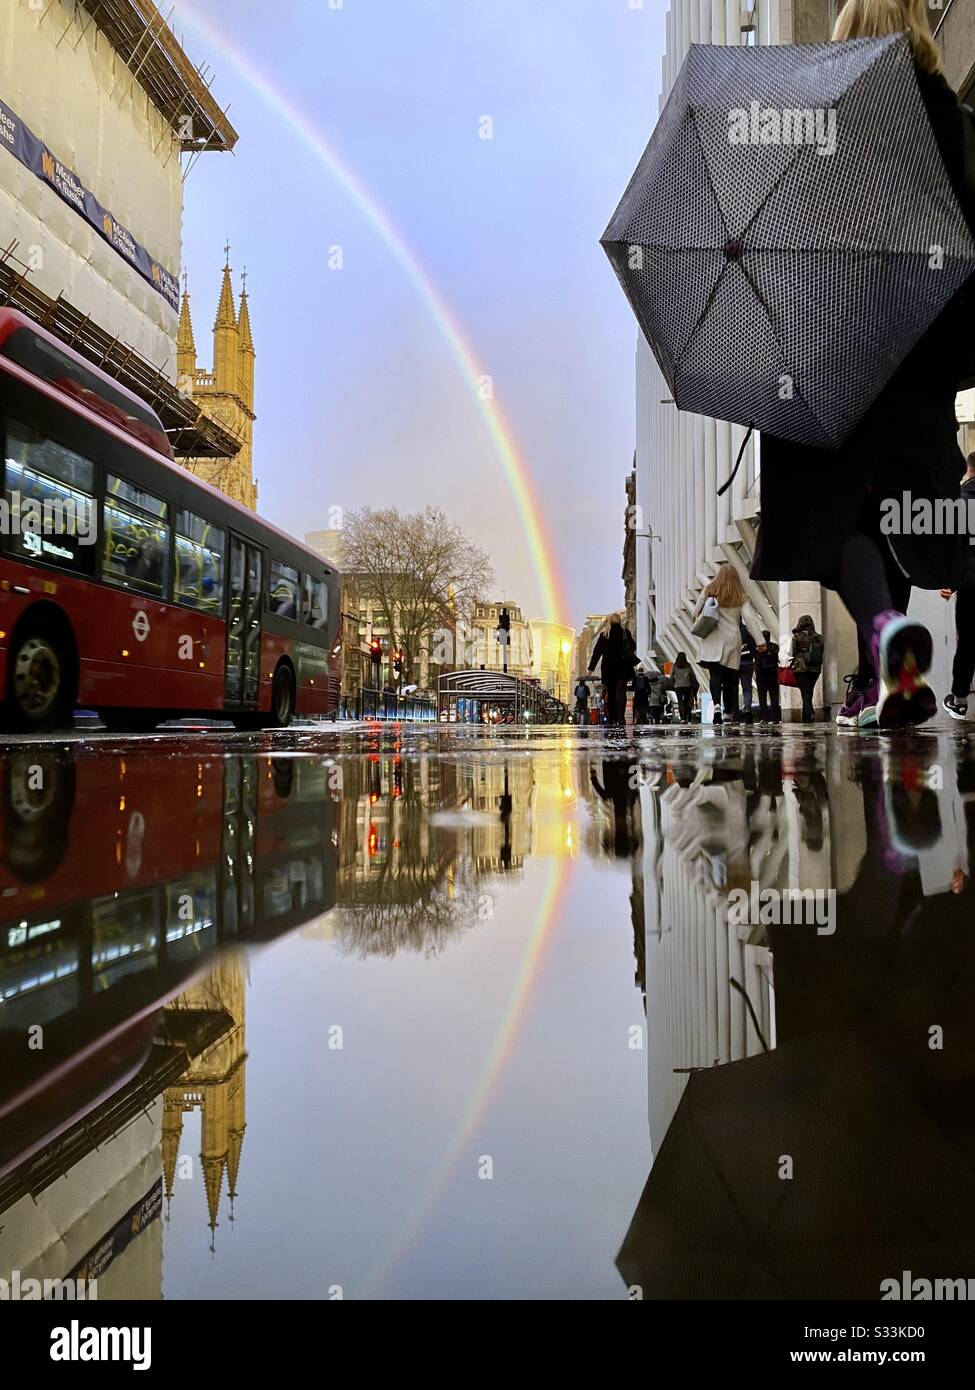 UK Weather: A rainbow shines over the Walkie Talkie building, as it is reflected on a rainy street in Holborn Viaduct, London, England. Stock Photo